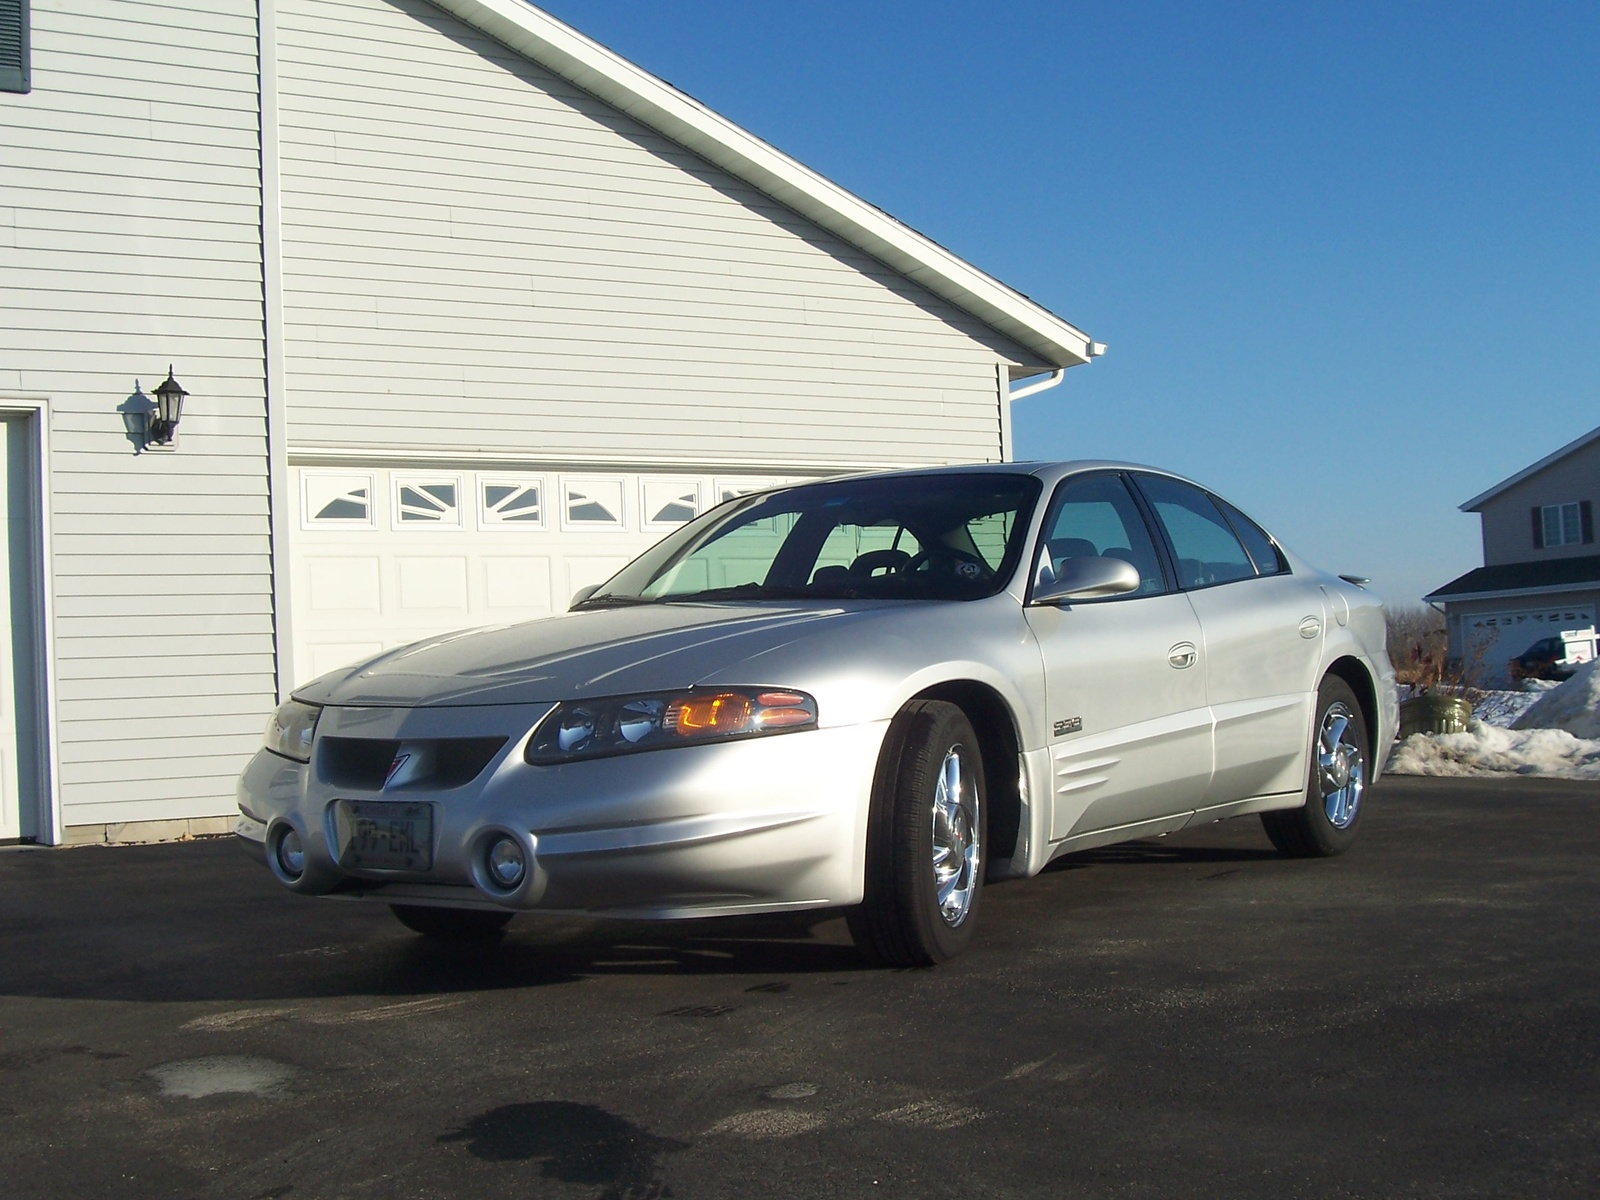 2001 pontiac bonneville ssei interior with 2000 Pontiac Bonneville Pictures C3309 Pi35653365 on Controls 43560542 together with Engine further 726 2001 Pontiac Bonneville White Wallpaper 1 in addition Exterior 49172195 also Famous 1996 Pontiac Bonneville Interior.